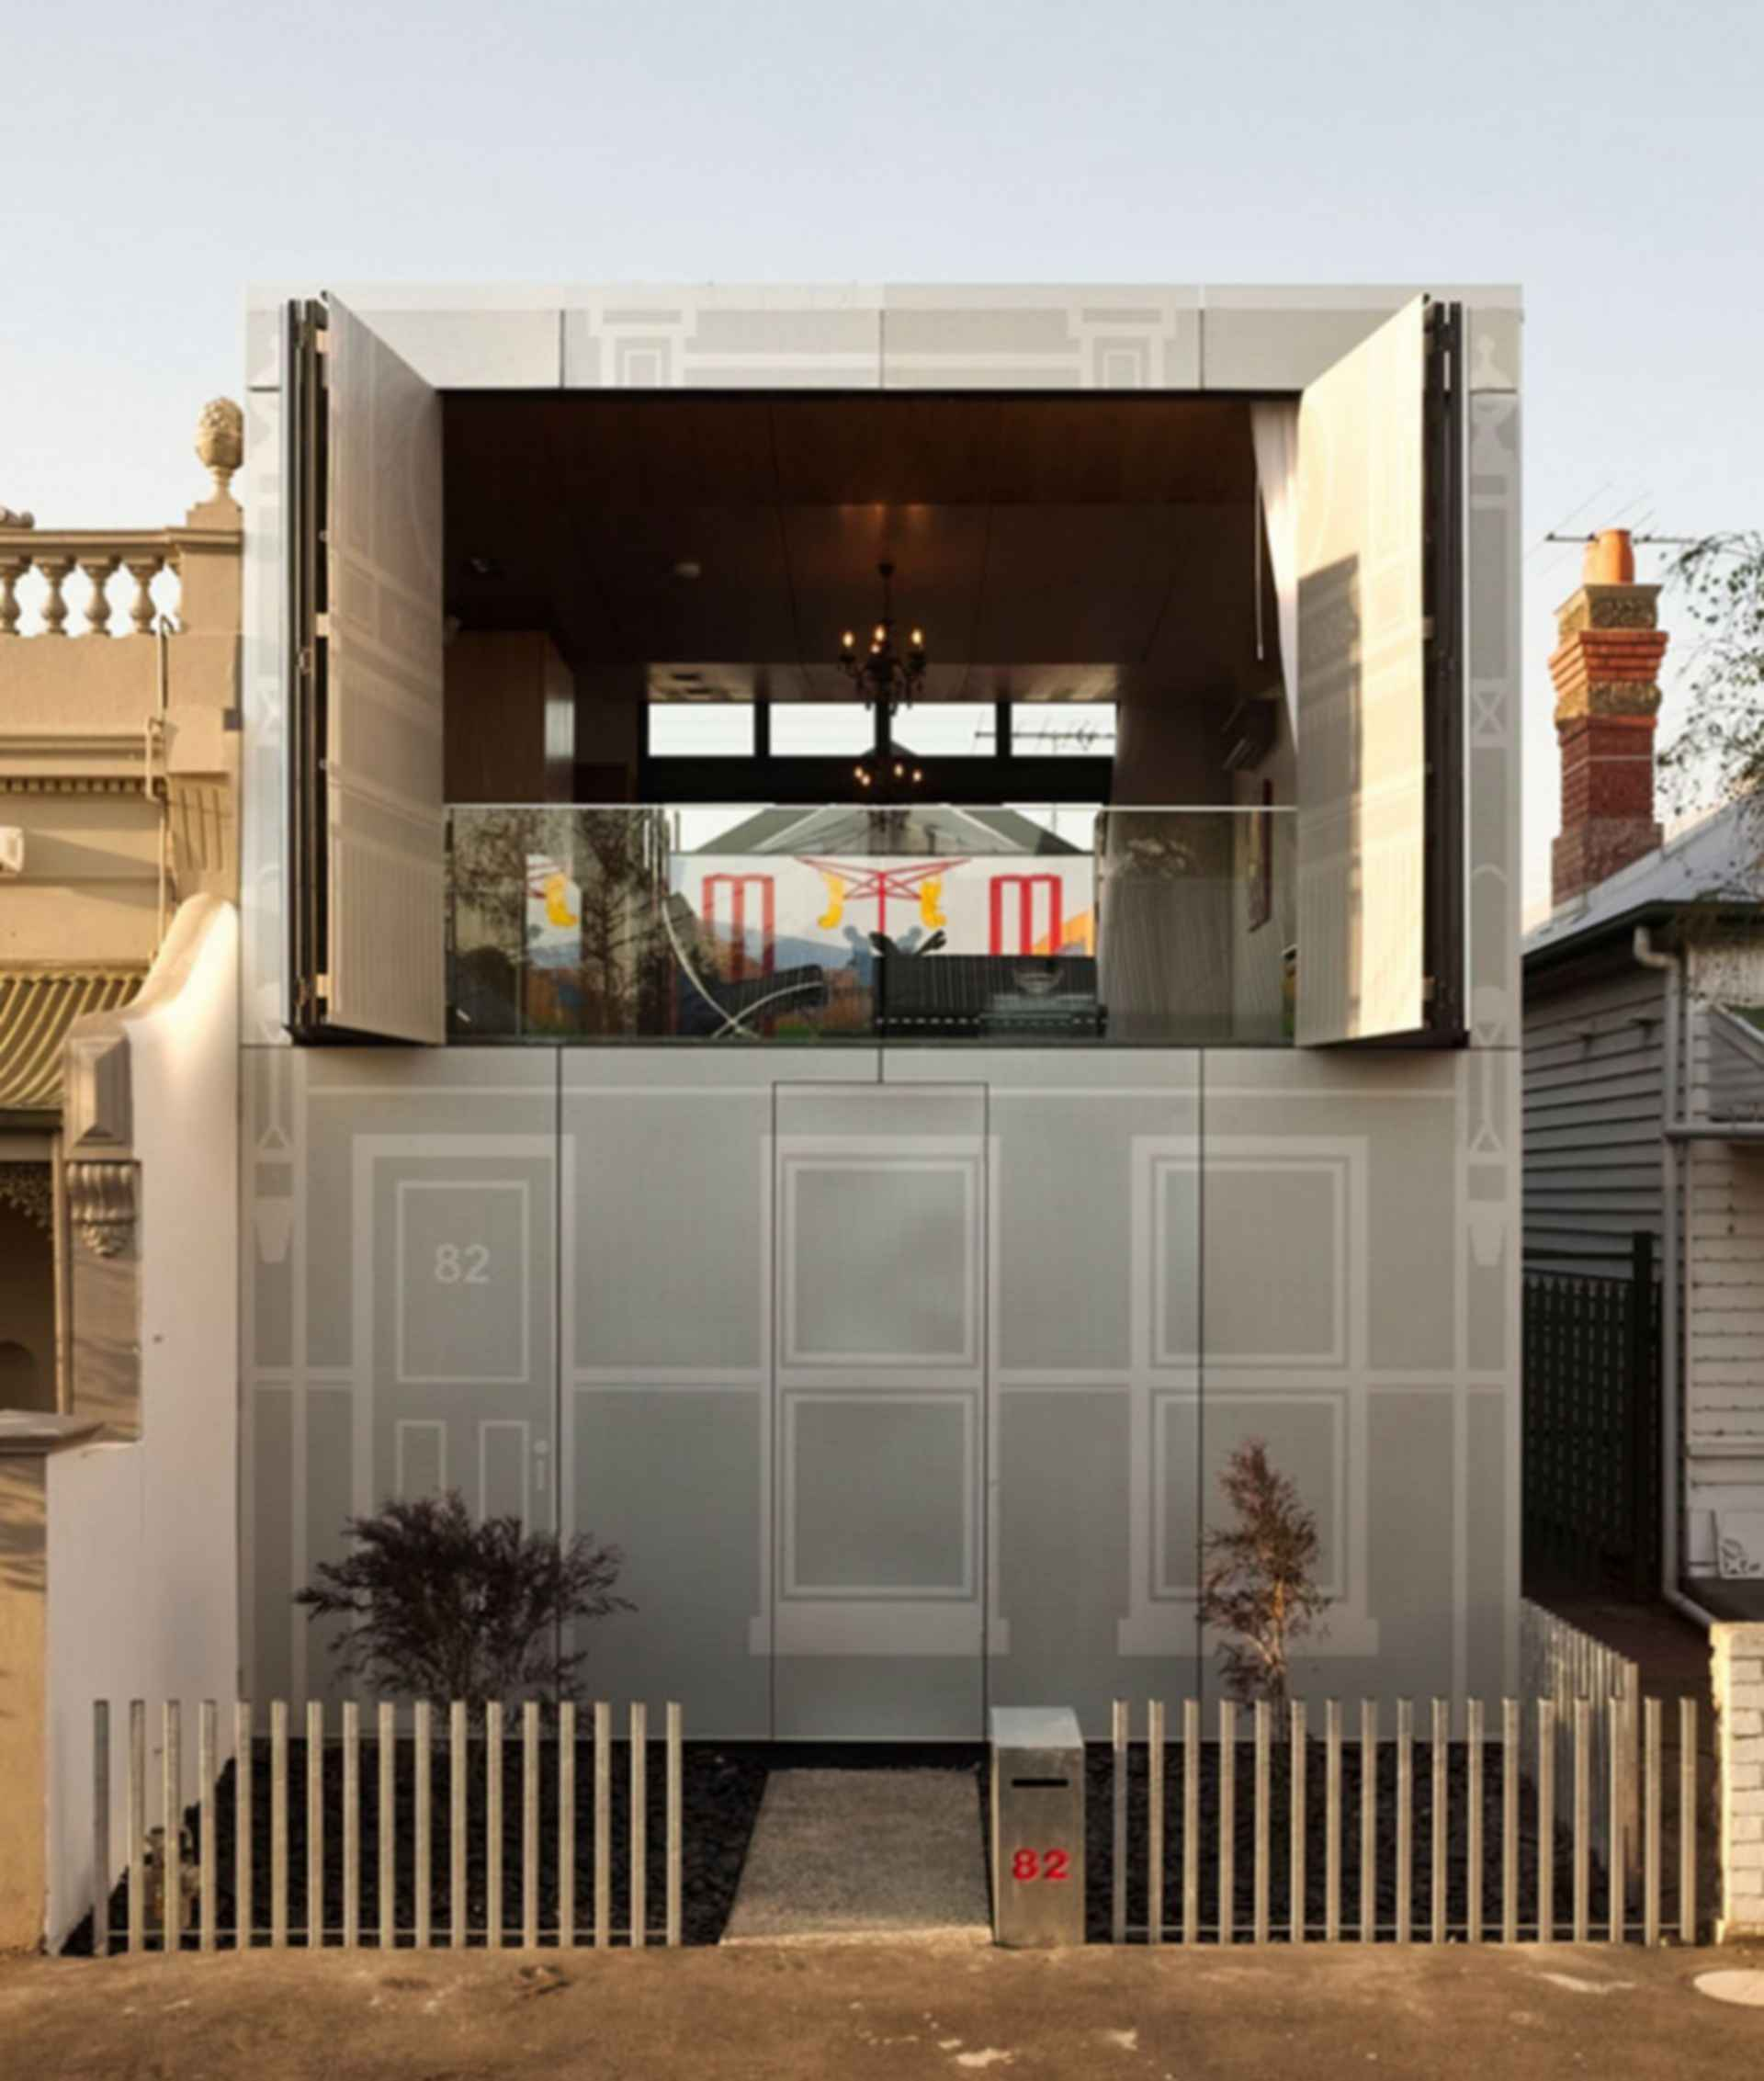 Perforated House - exterior